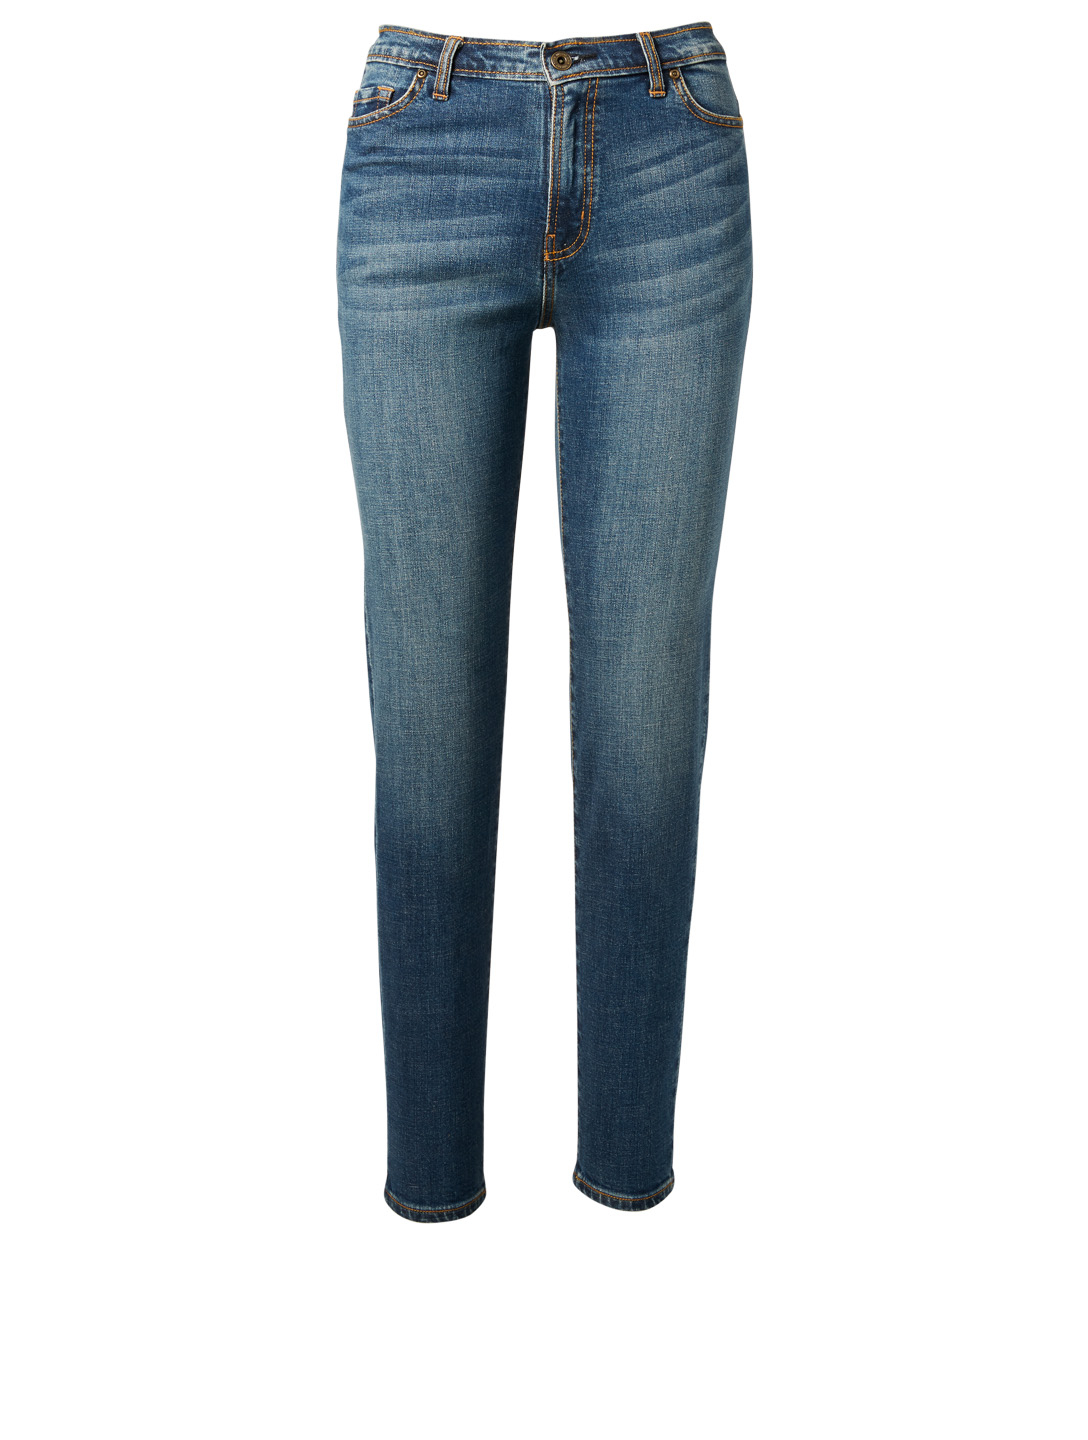 OUTLAND DENIM Lucy High-Rise Cigarette Jeans H Project Blue